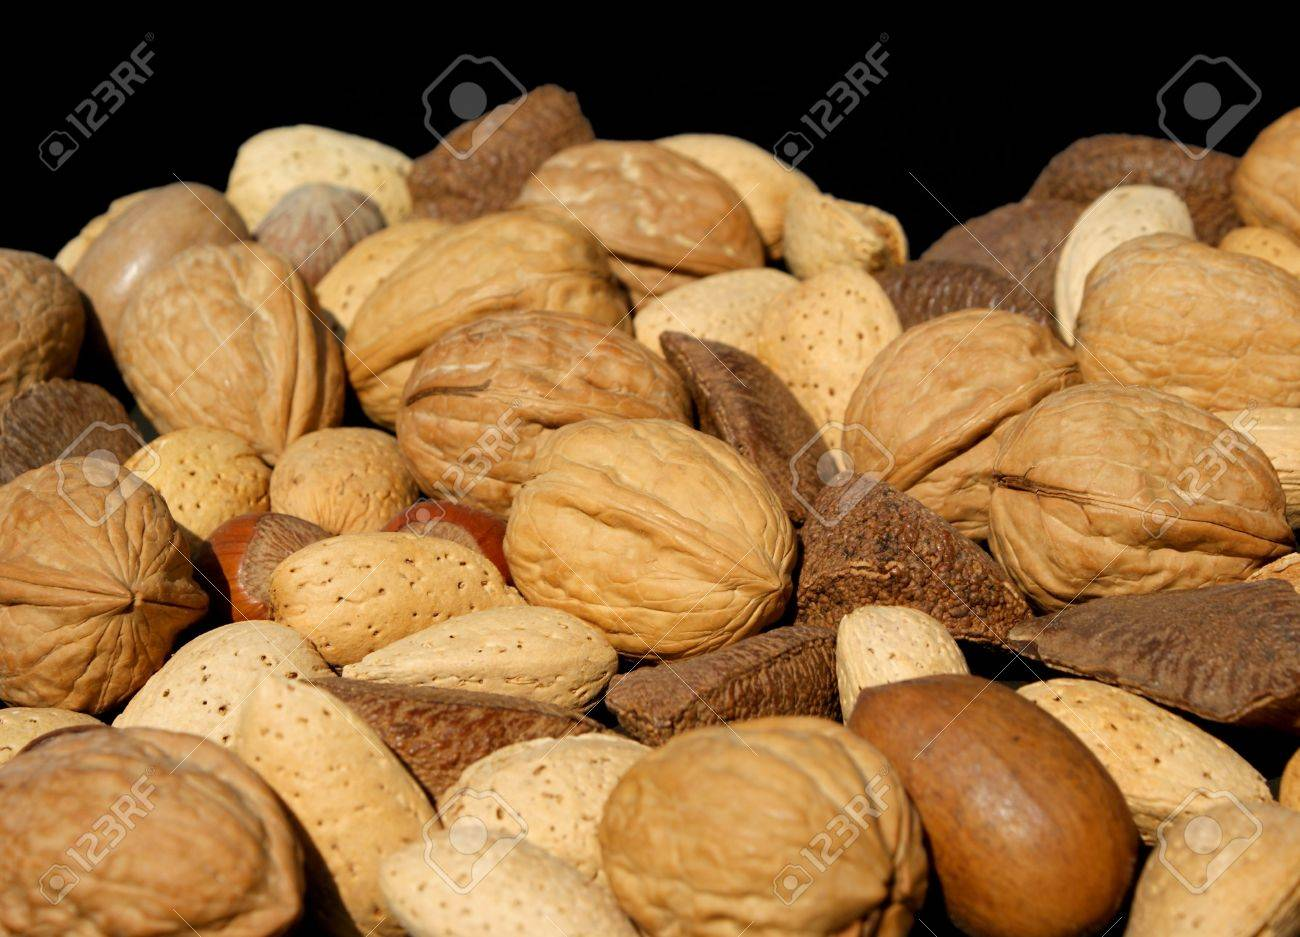 Angled view of assorted nuts against black background. Stock Photo - 8952163